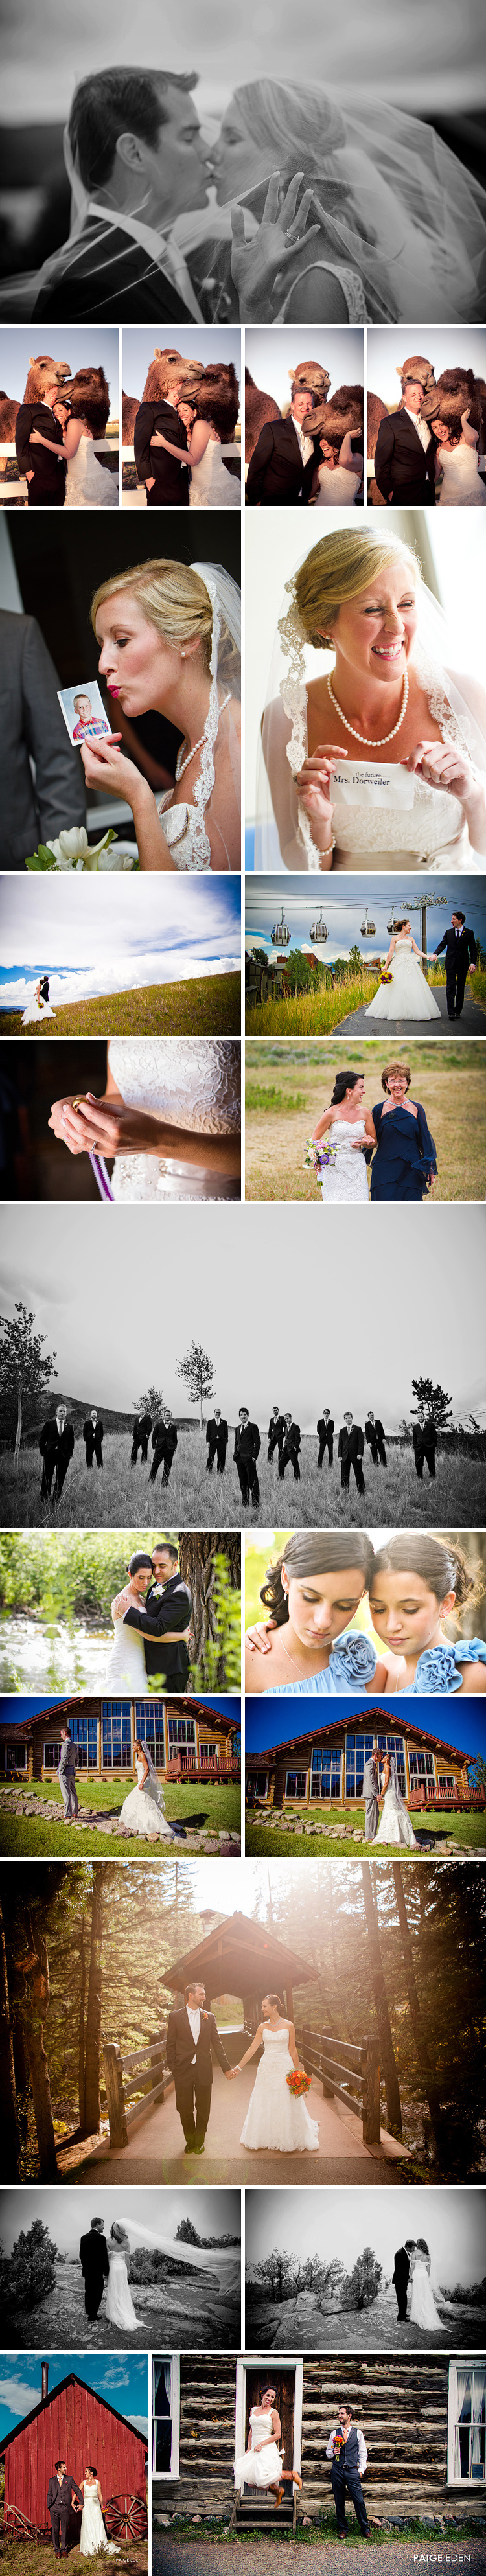 denver-weddings-2012-colorado-wedding-photography-1